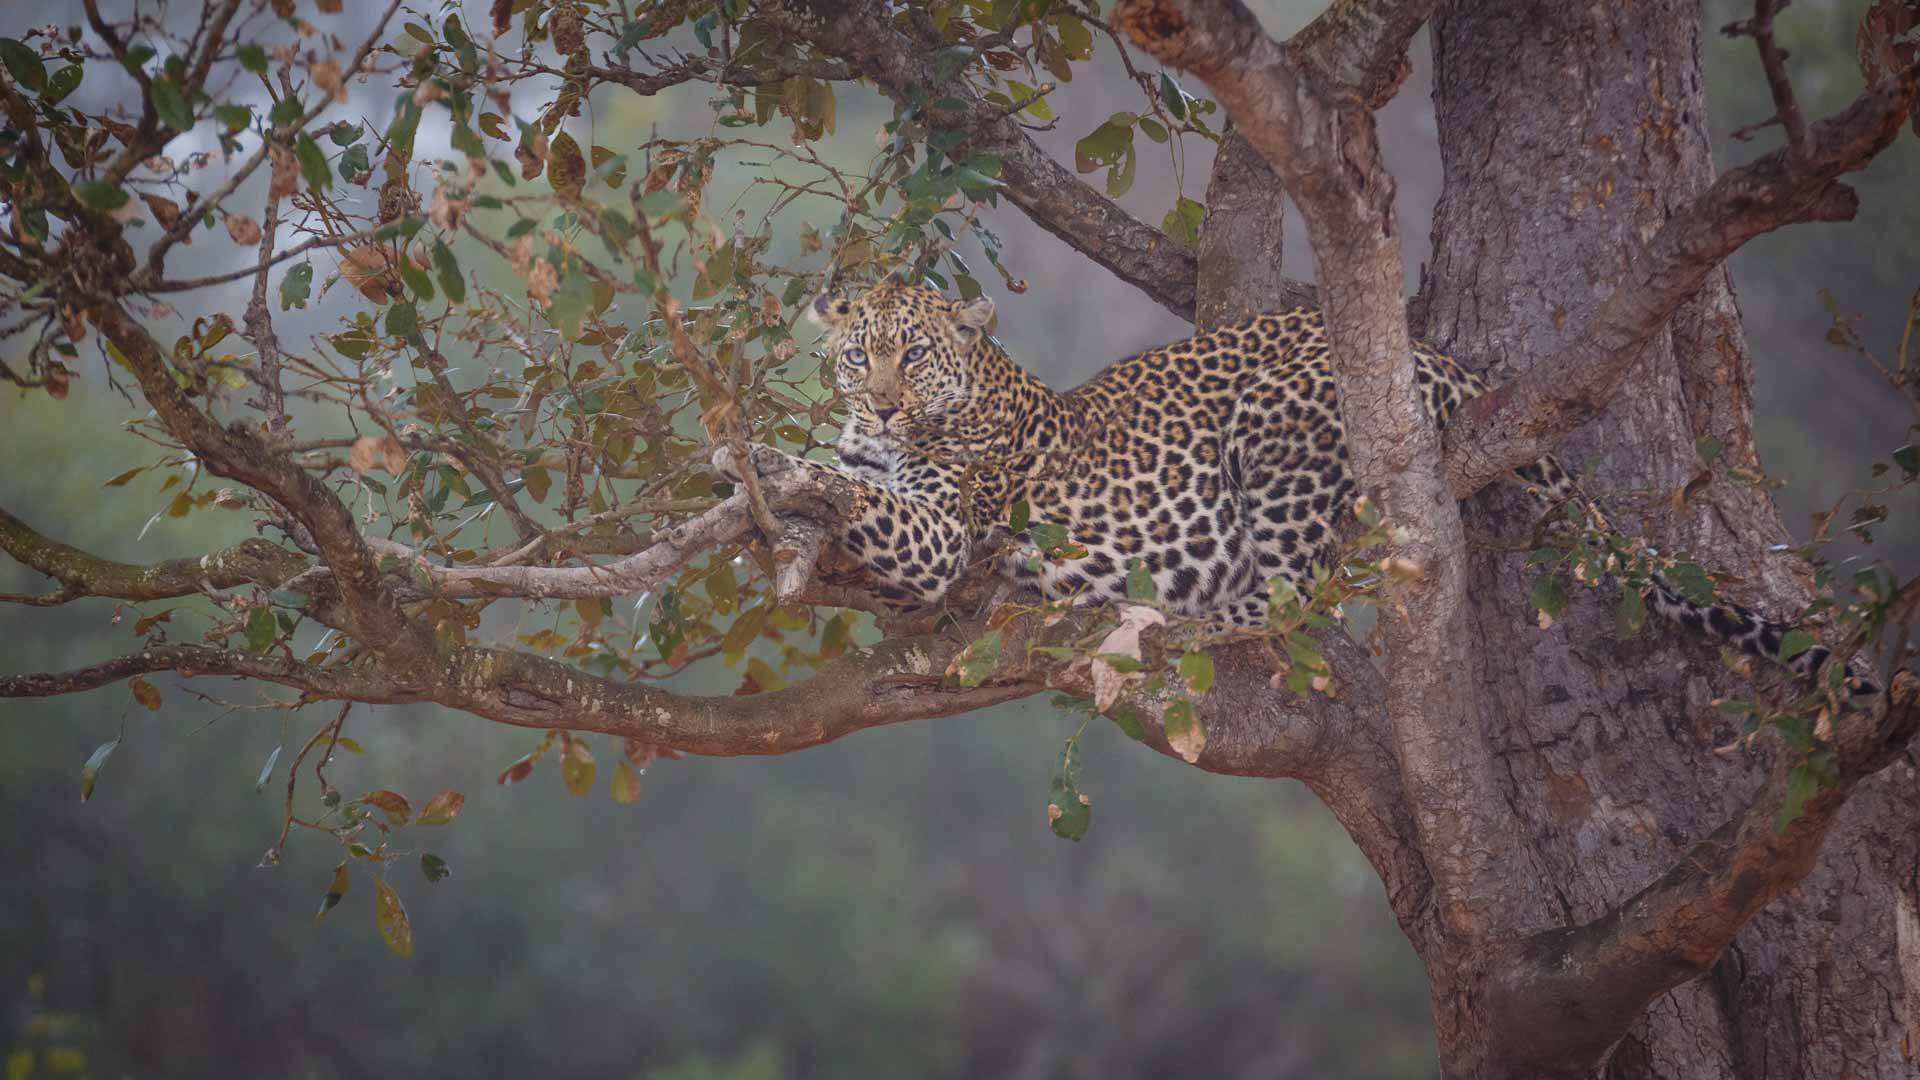 Photo credit: Chad Cocking | A leopard resting on a tree branch at Tanda Tula in the Timbavati Game Reserve, South Africa.